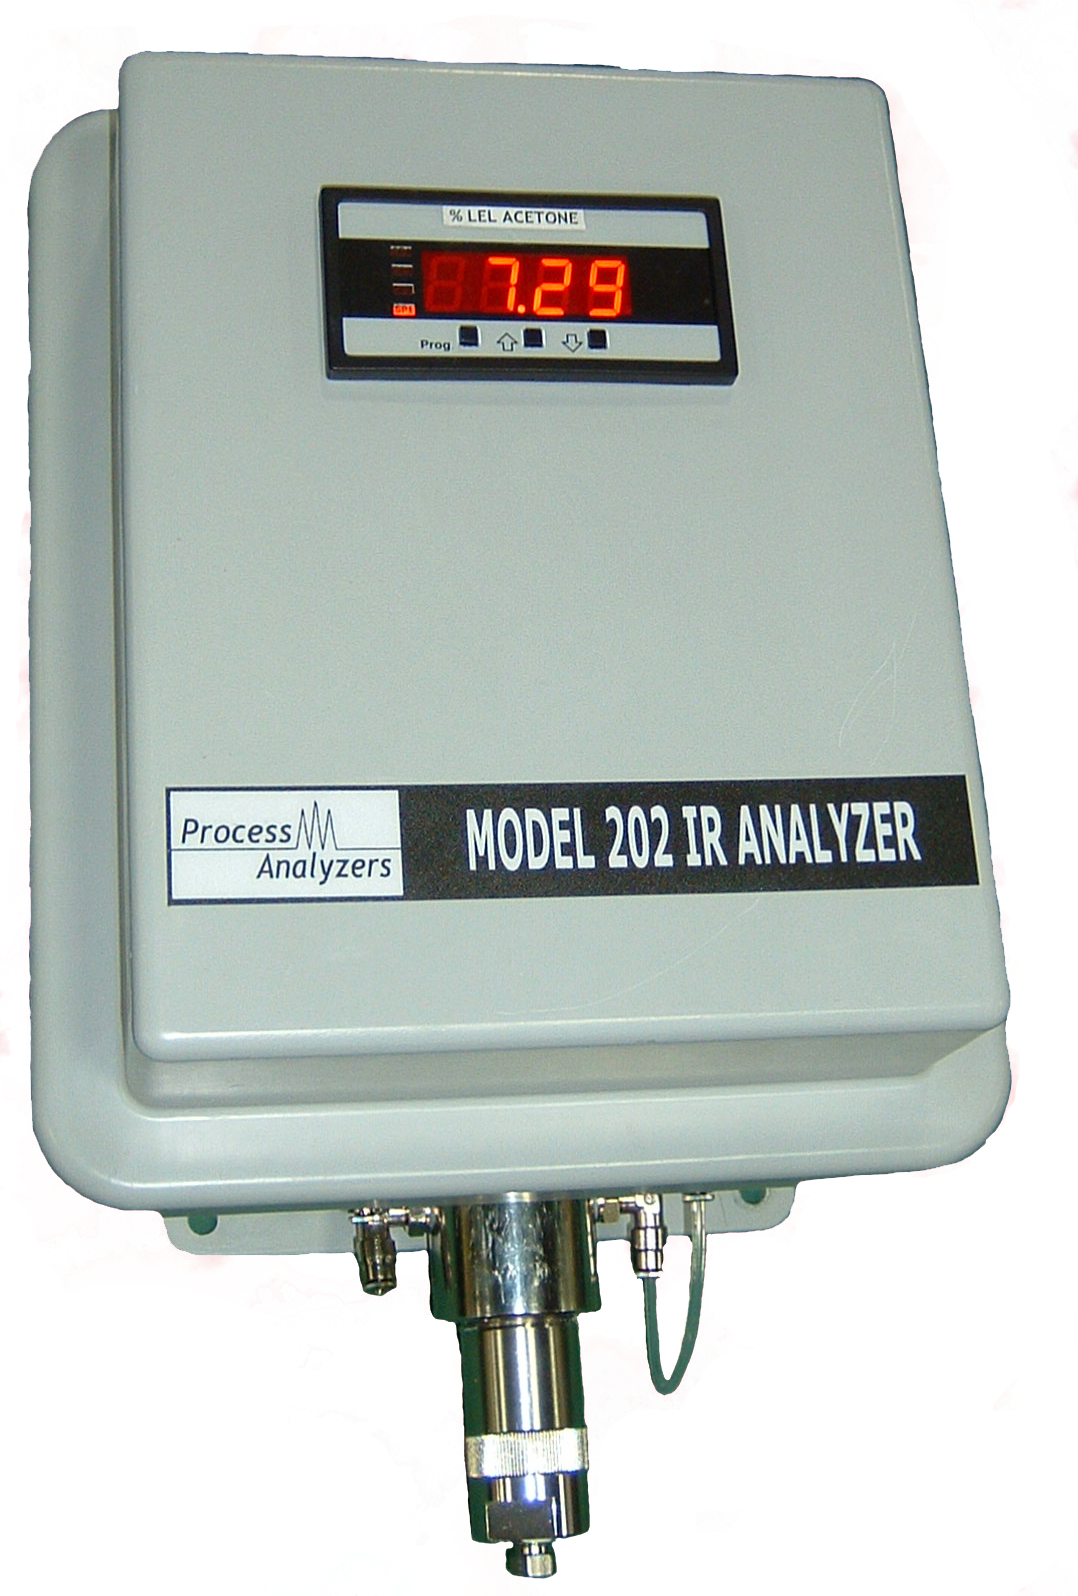 Model 202 Infrared Analyzer for LEL, Hydrocarbons, CH4, CO, CO2